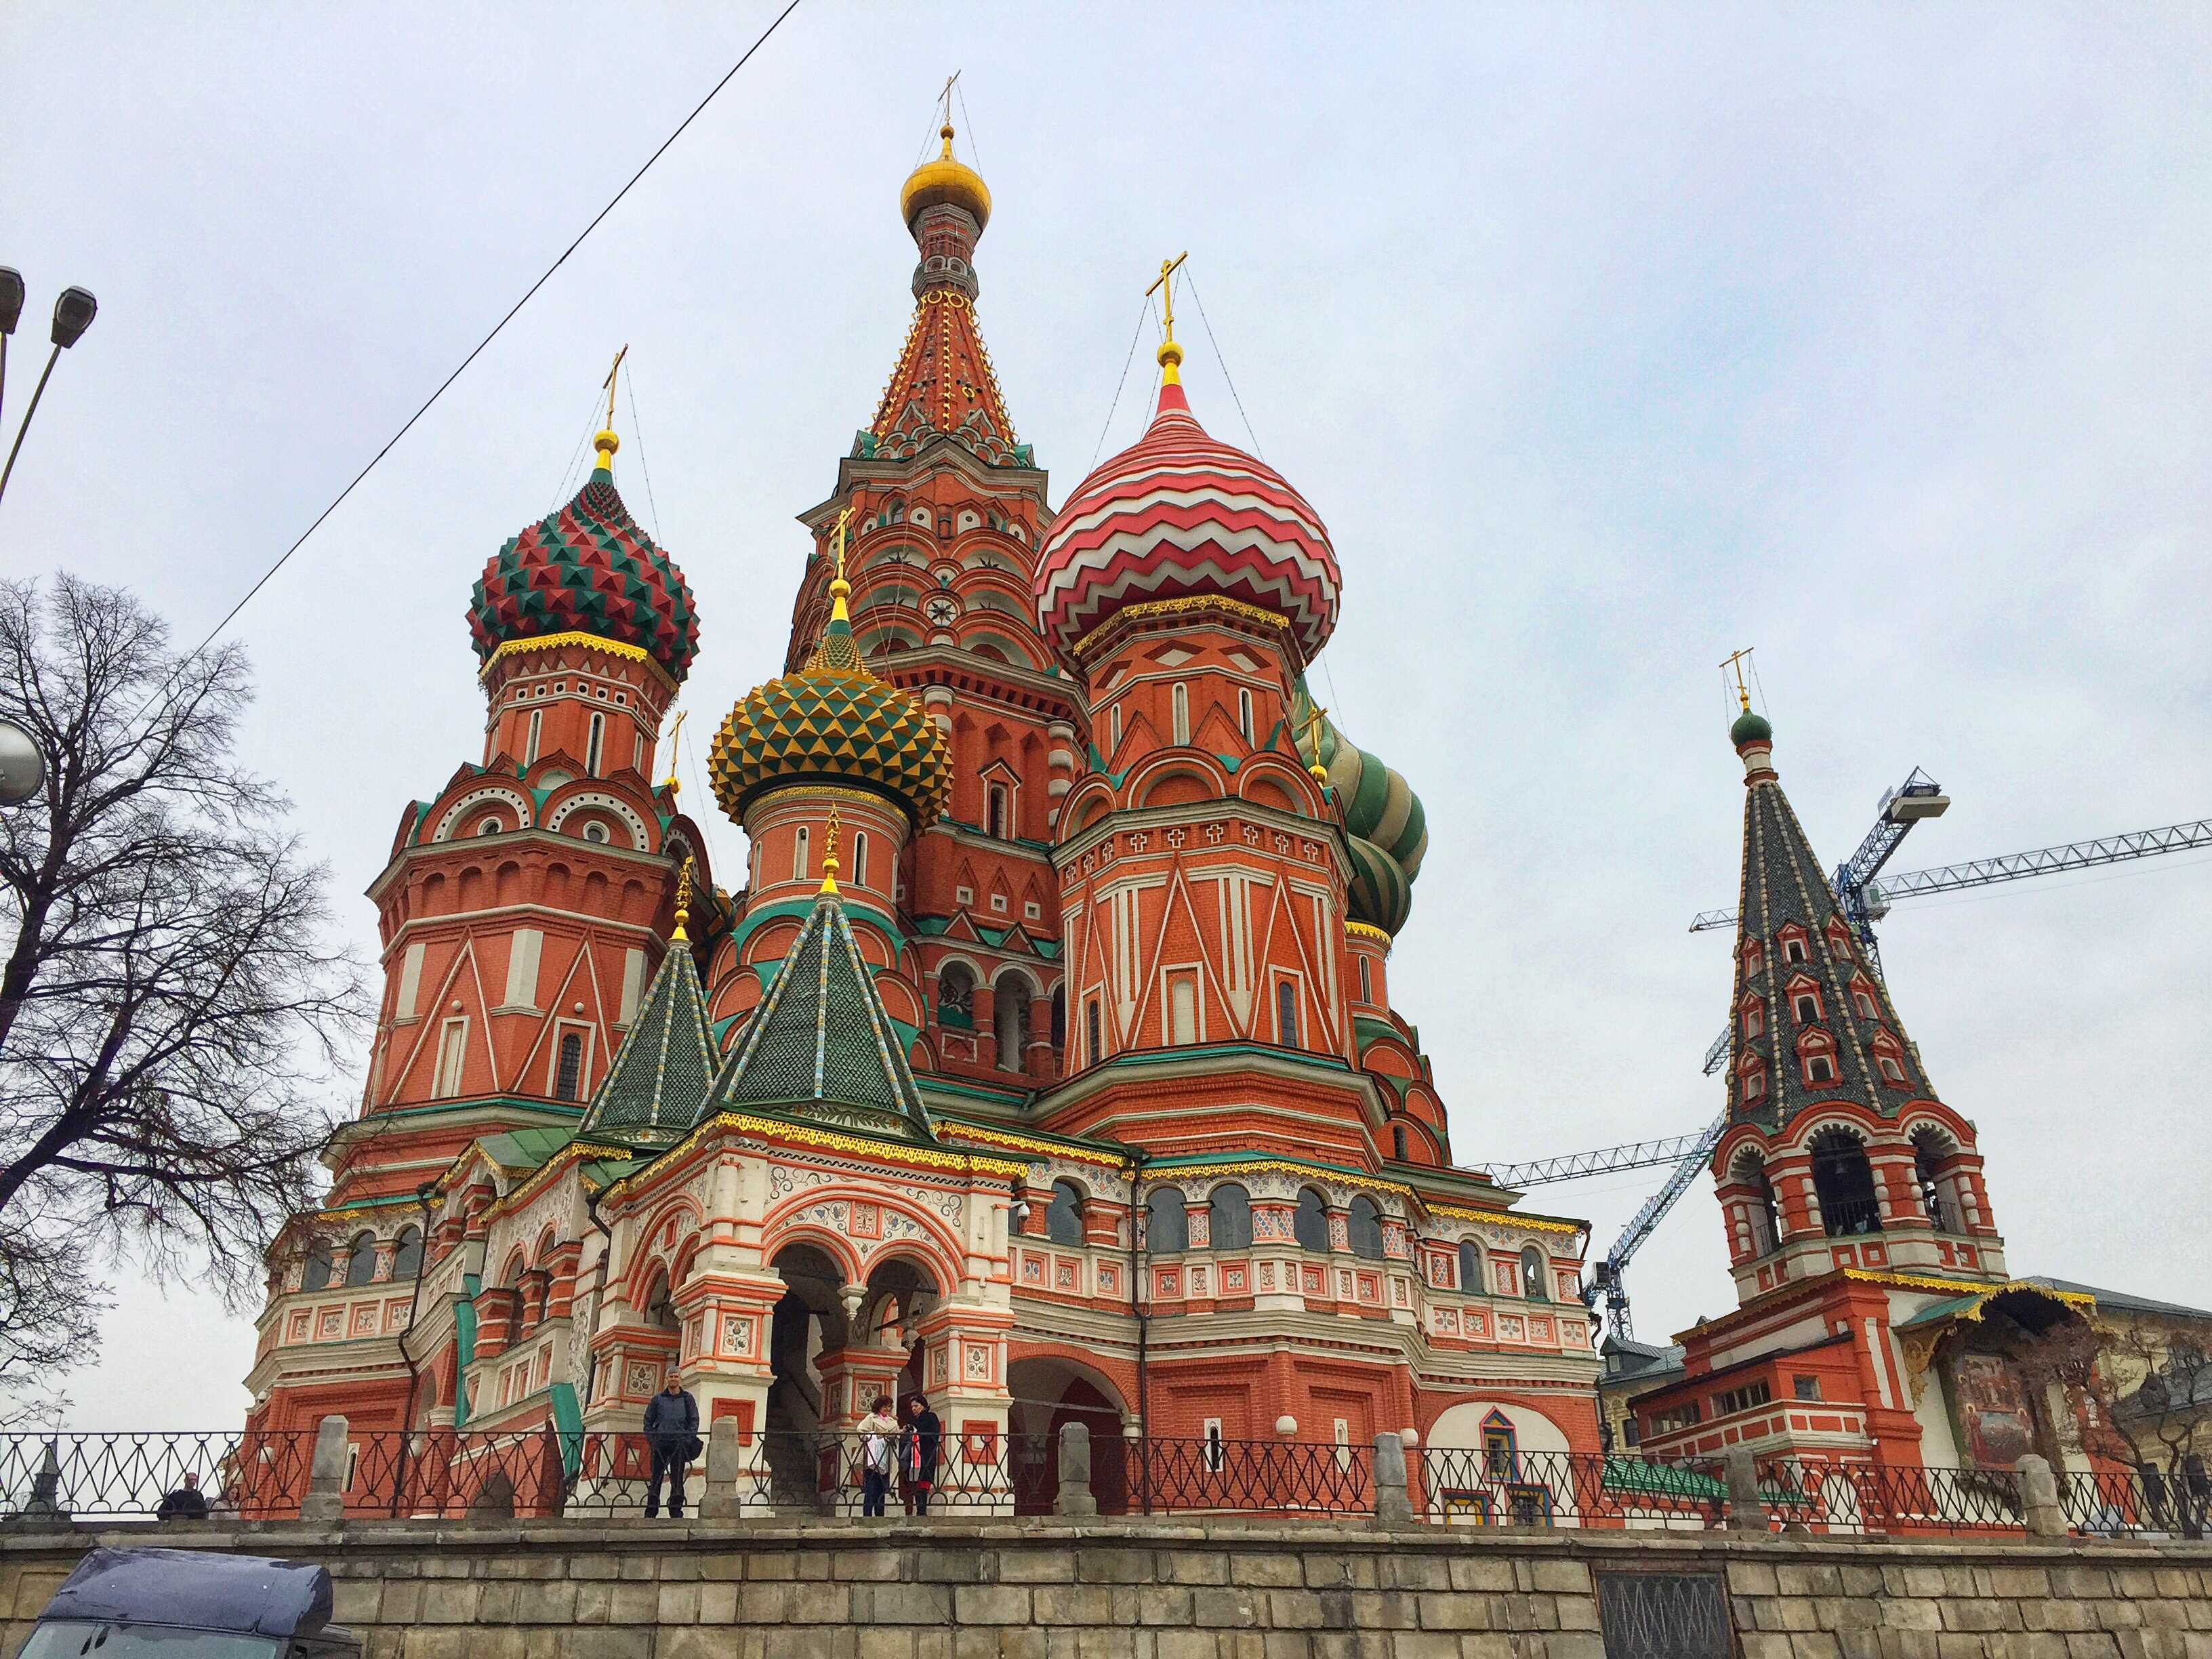 St Basil's Cathedral in Russia